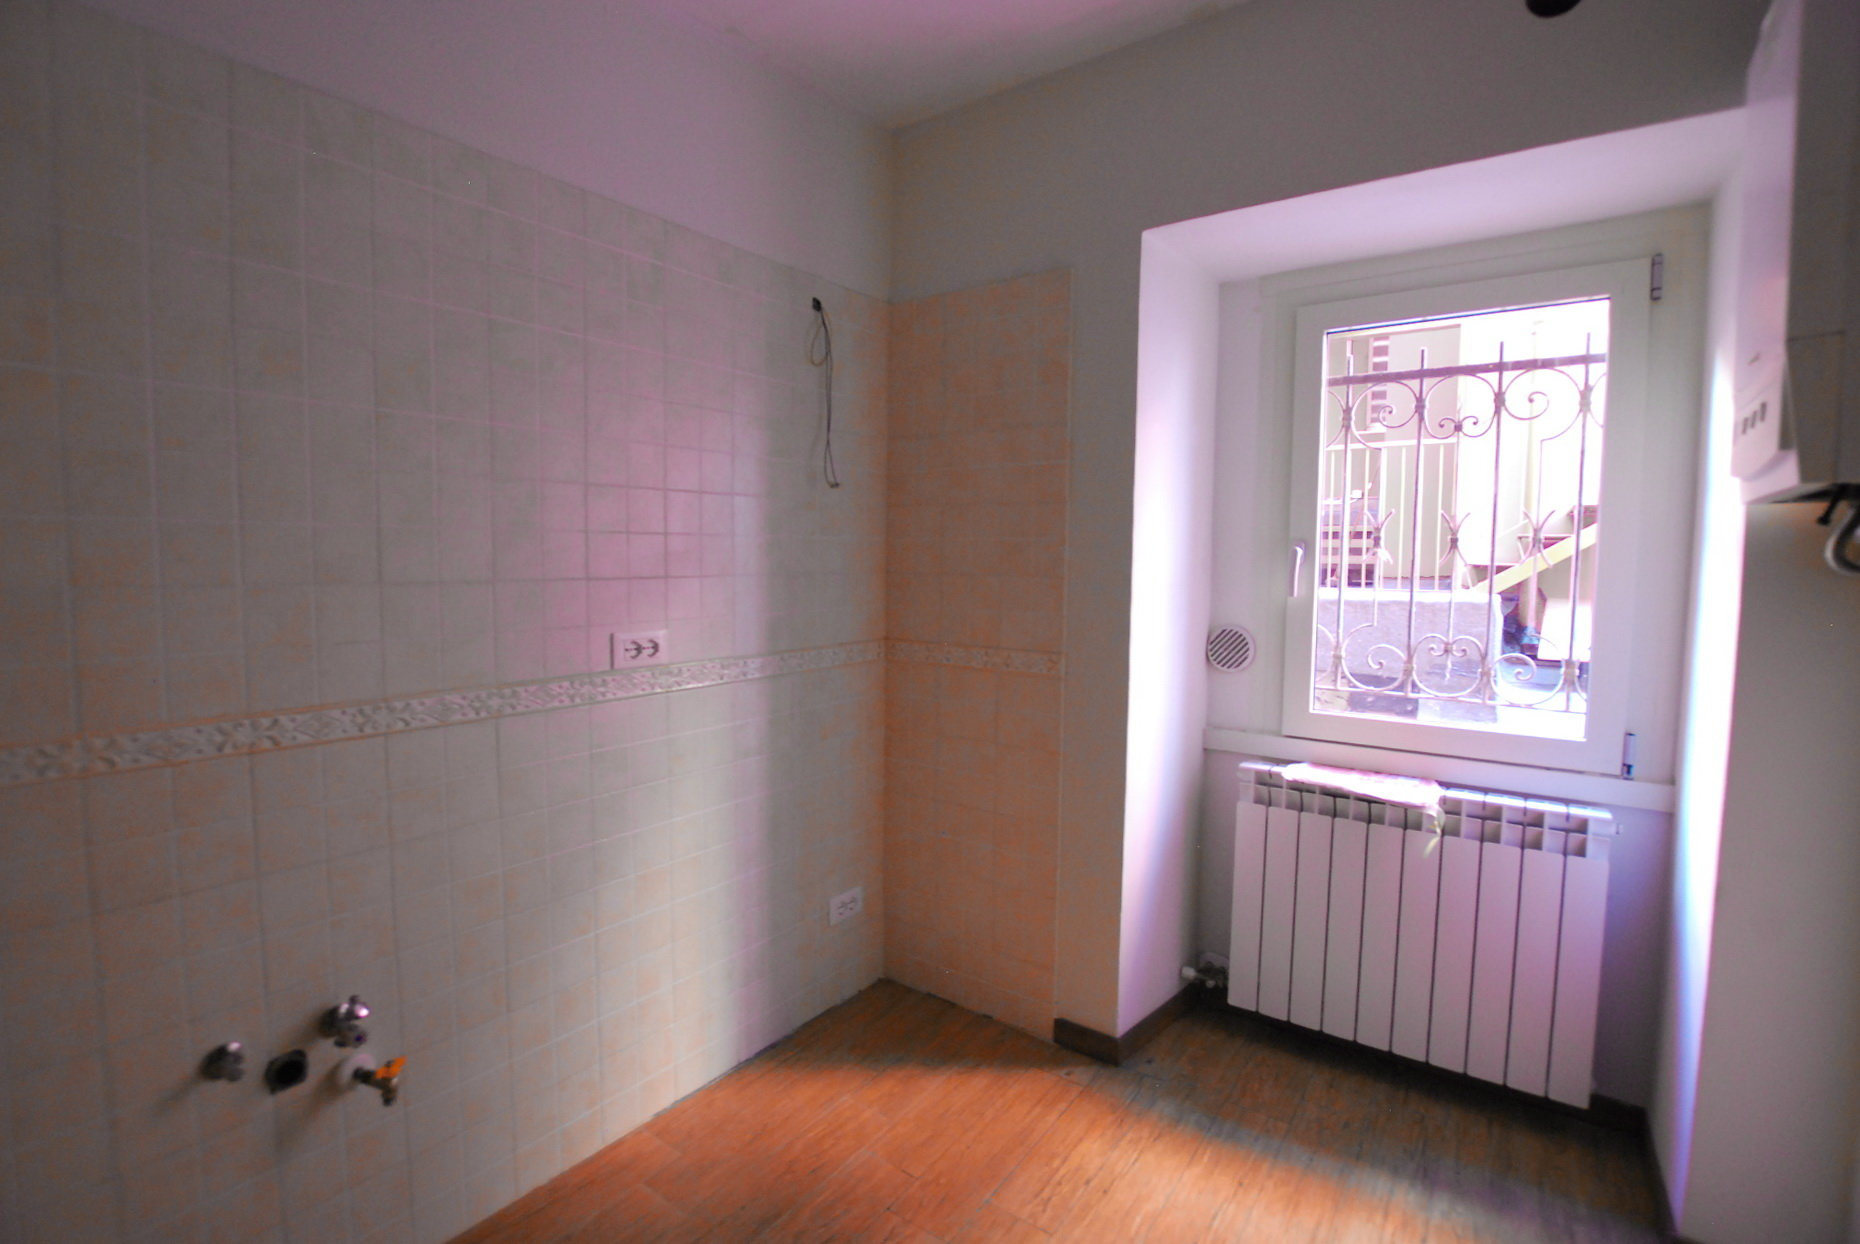 Rent apartment in the centre of Stresa- windows with double glass